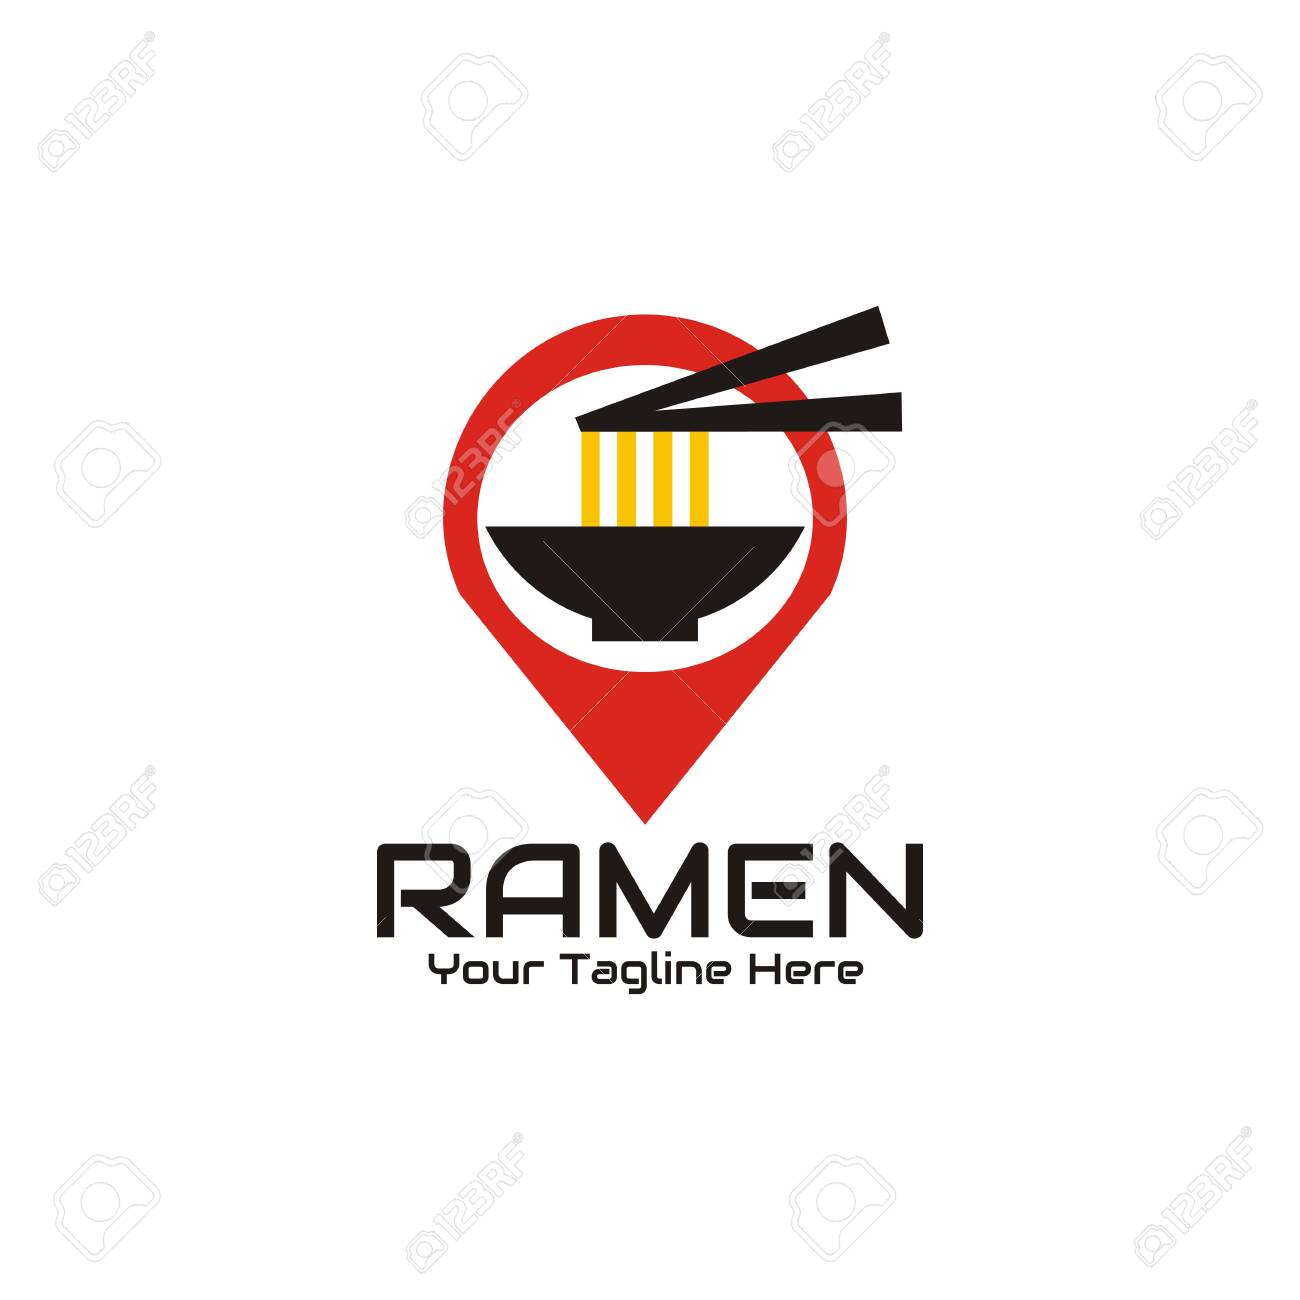 Illustration Vector Graphic Of The Ramen Is Taken With Chopsticks On A Bowl With A Location Symbol Or Gps Background Perfect For Ramen Noodles Fast Food Restaurant Cafe Bar Etc Ilustraciones Vectoriales